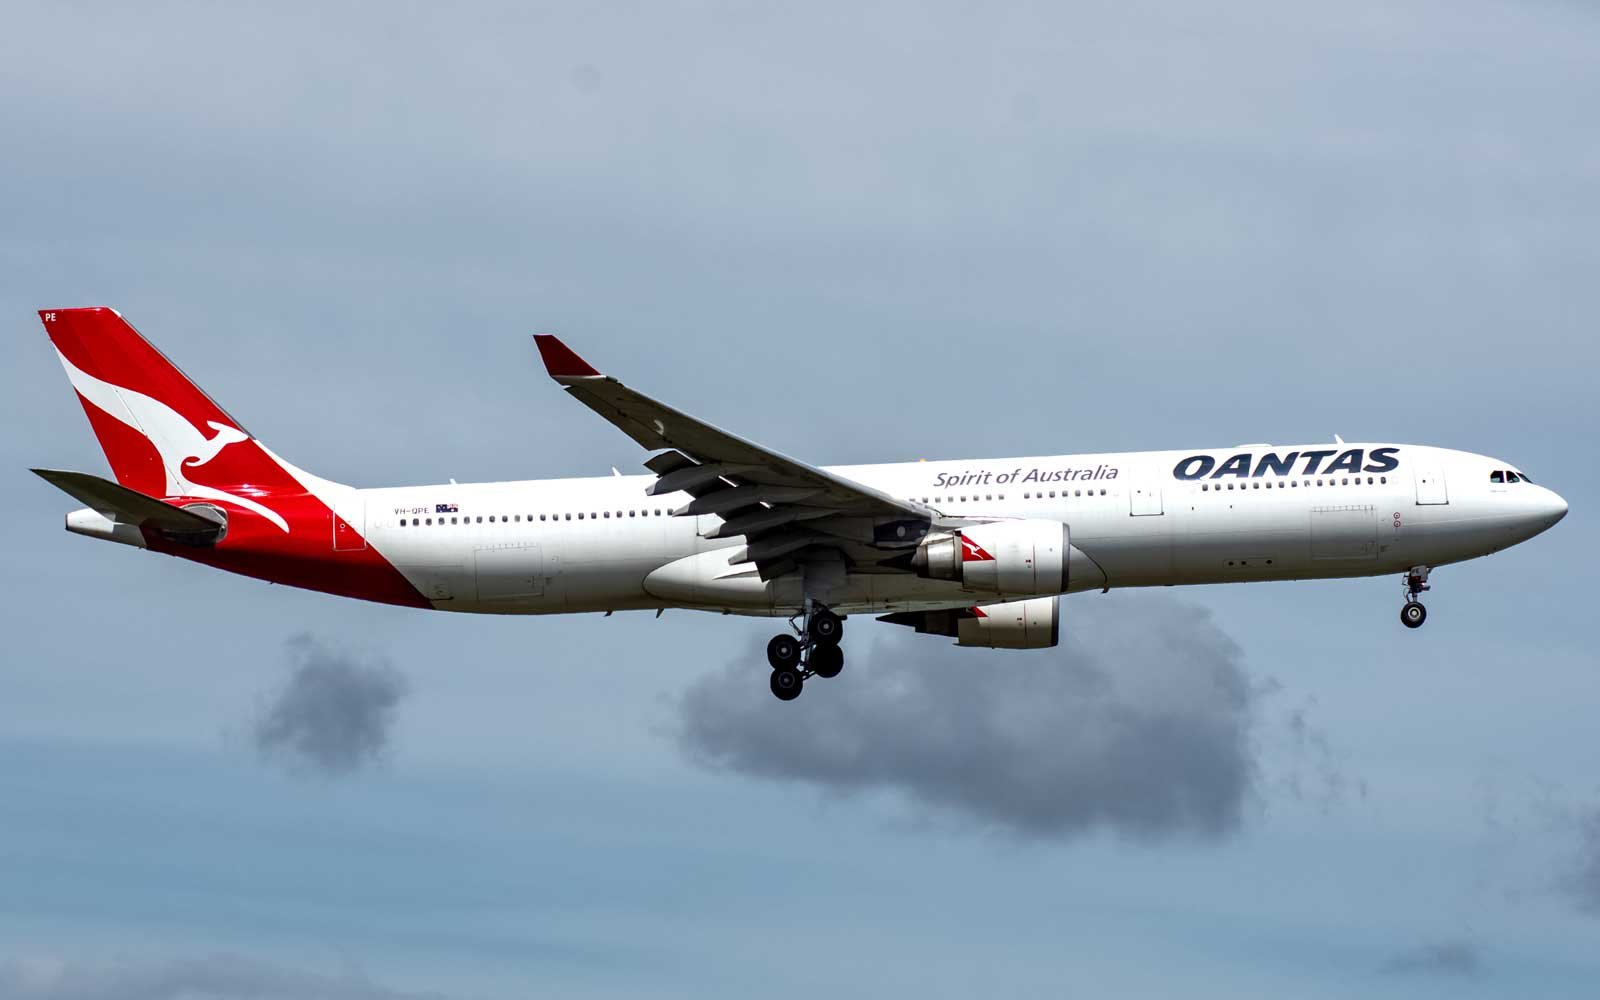 This Qantas Flight Will Produce Zero Waste — and Passengers Probably Won't Even Notice a Difference